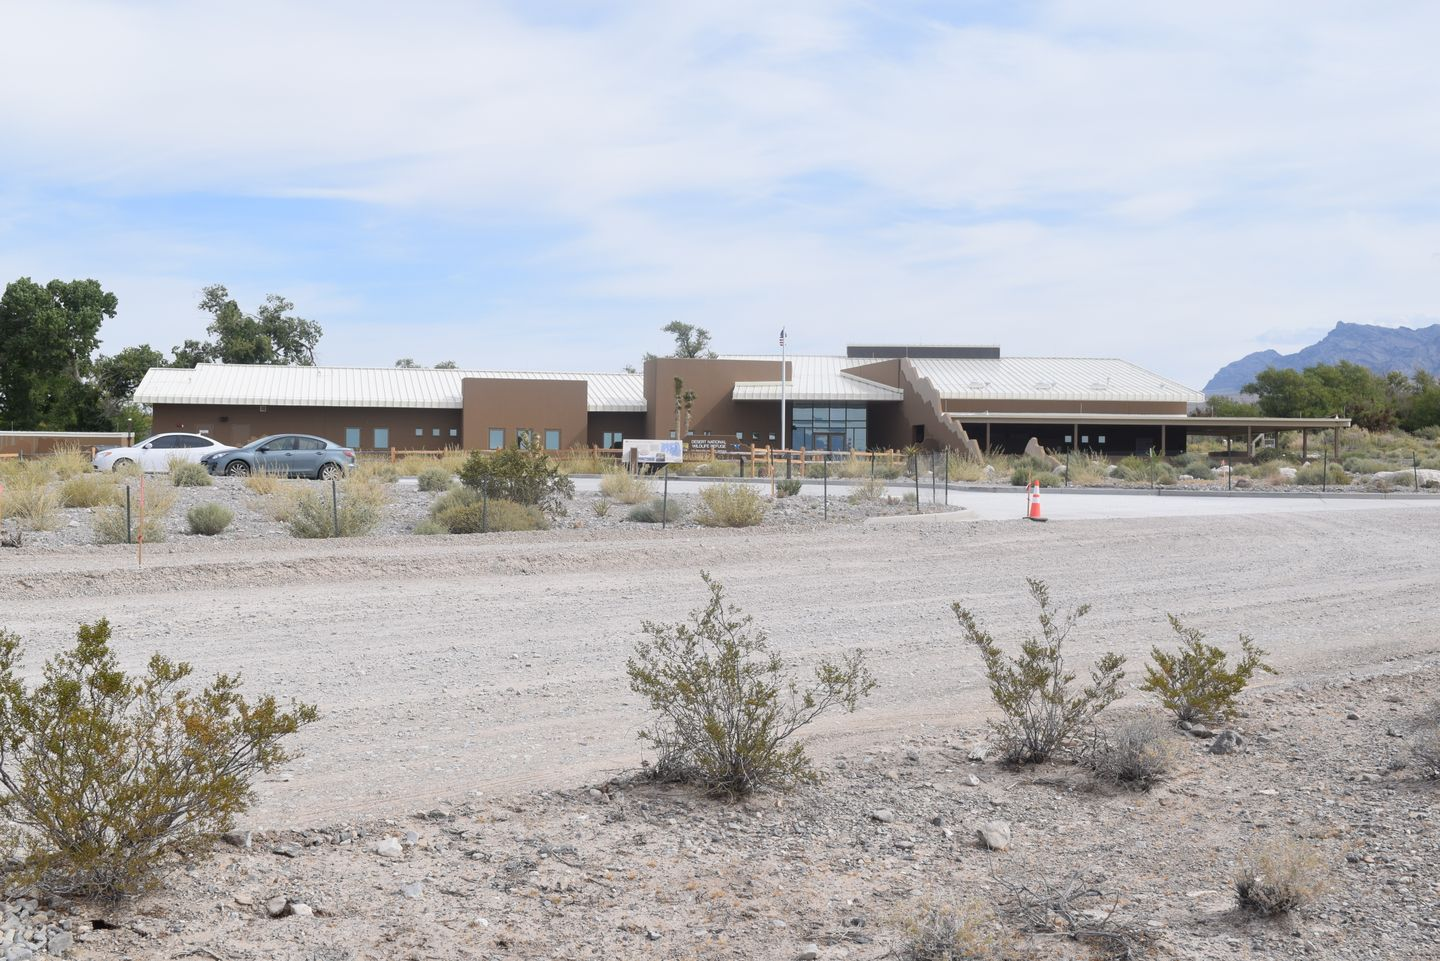 Alamo Road - Waypoint 1: Desert National Wildlife Refuge Visitor Center